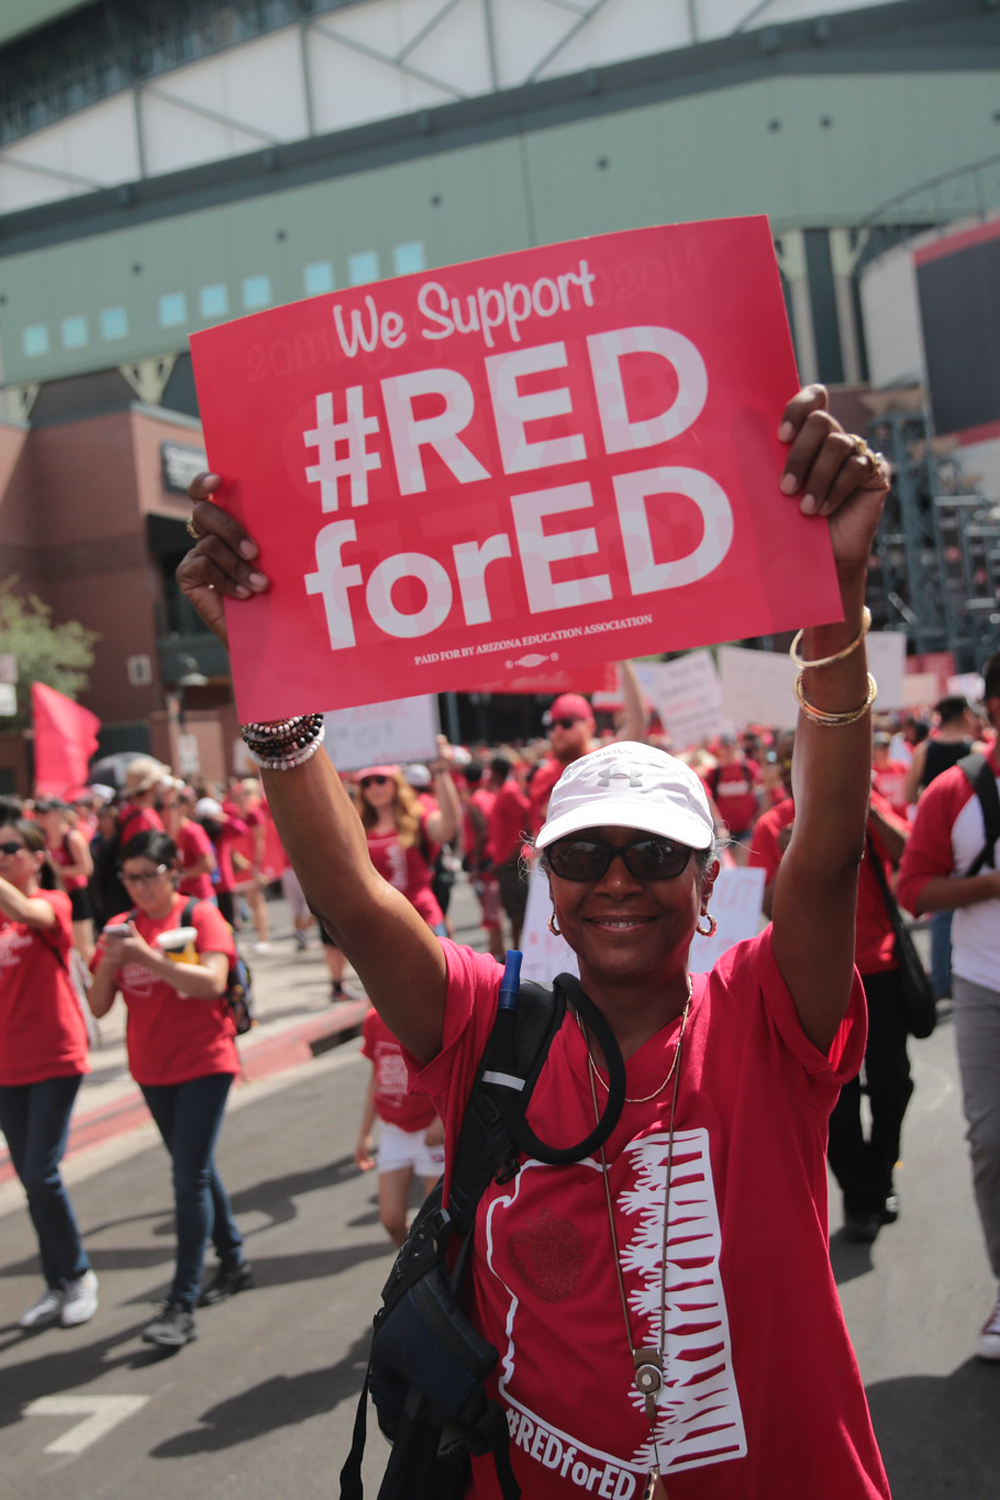 """Woman at a rally carrying a sign that says """"We Support #RED for ED"""""""